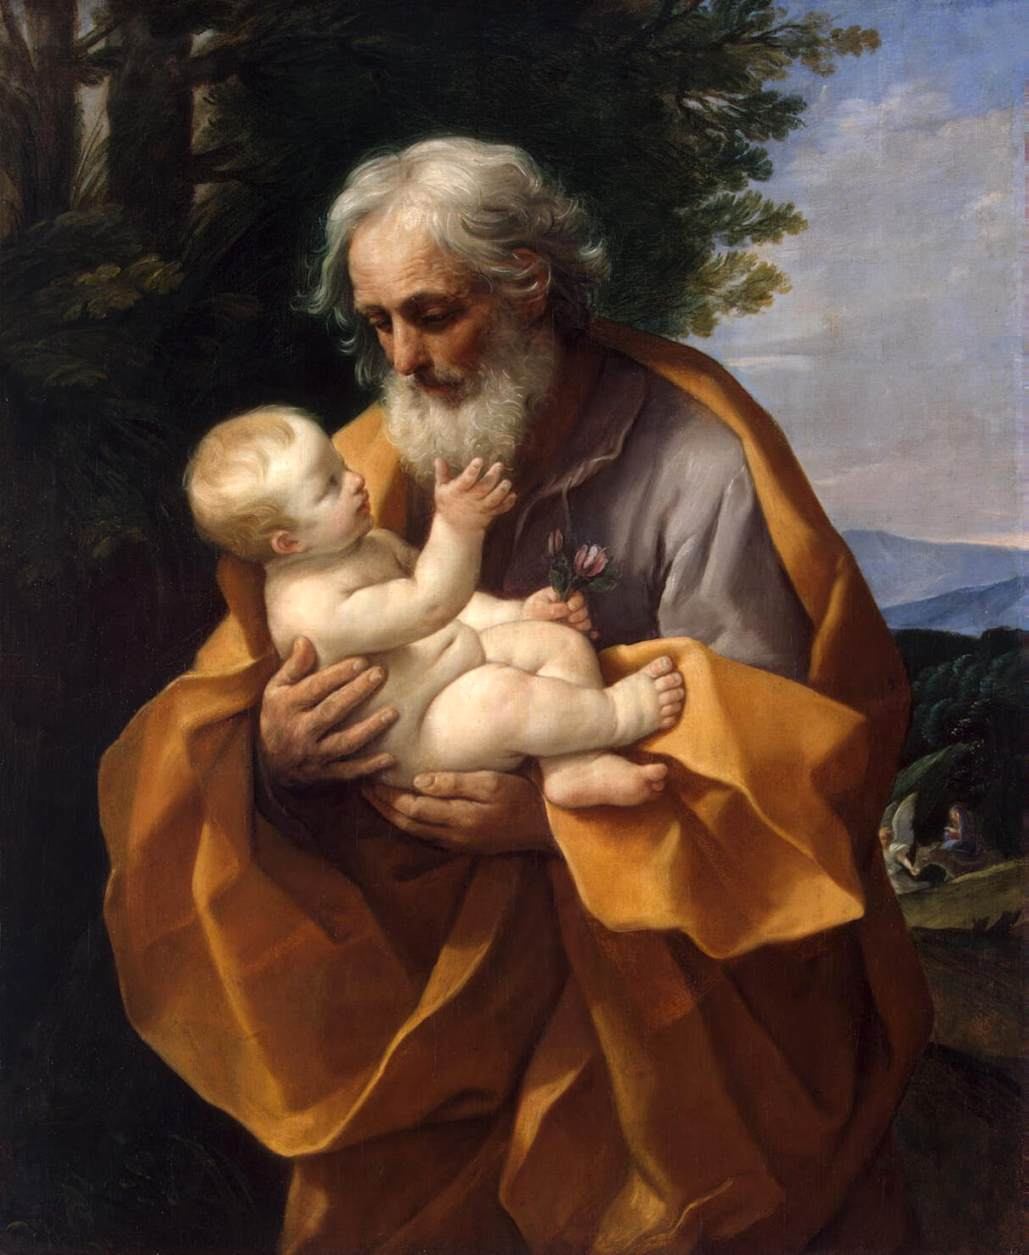 Christmas Story 3. The Birth of Jesus: Matthew. | Boap.org\'s Blog